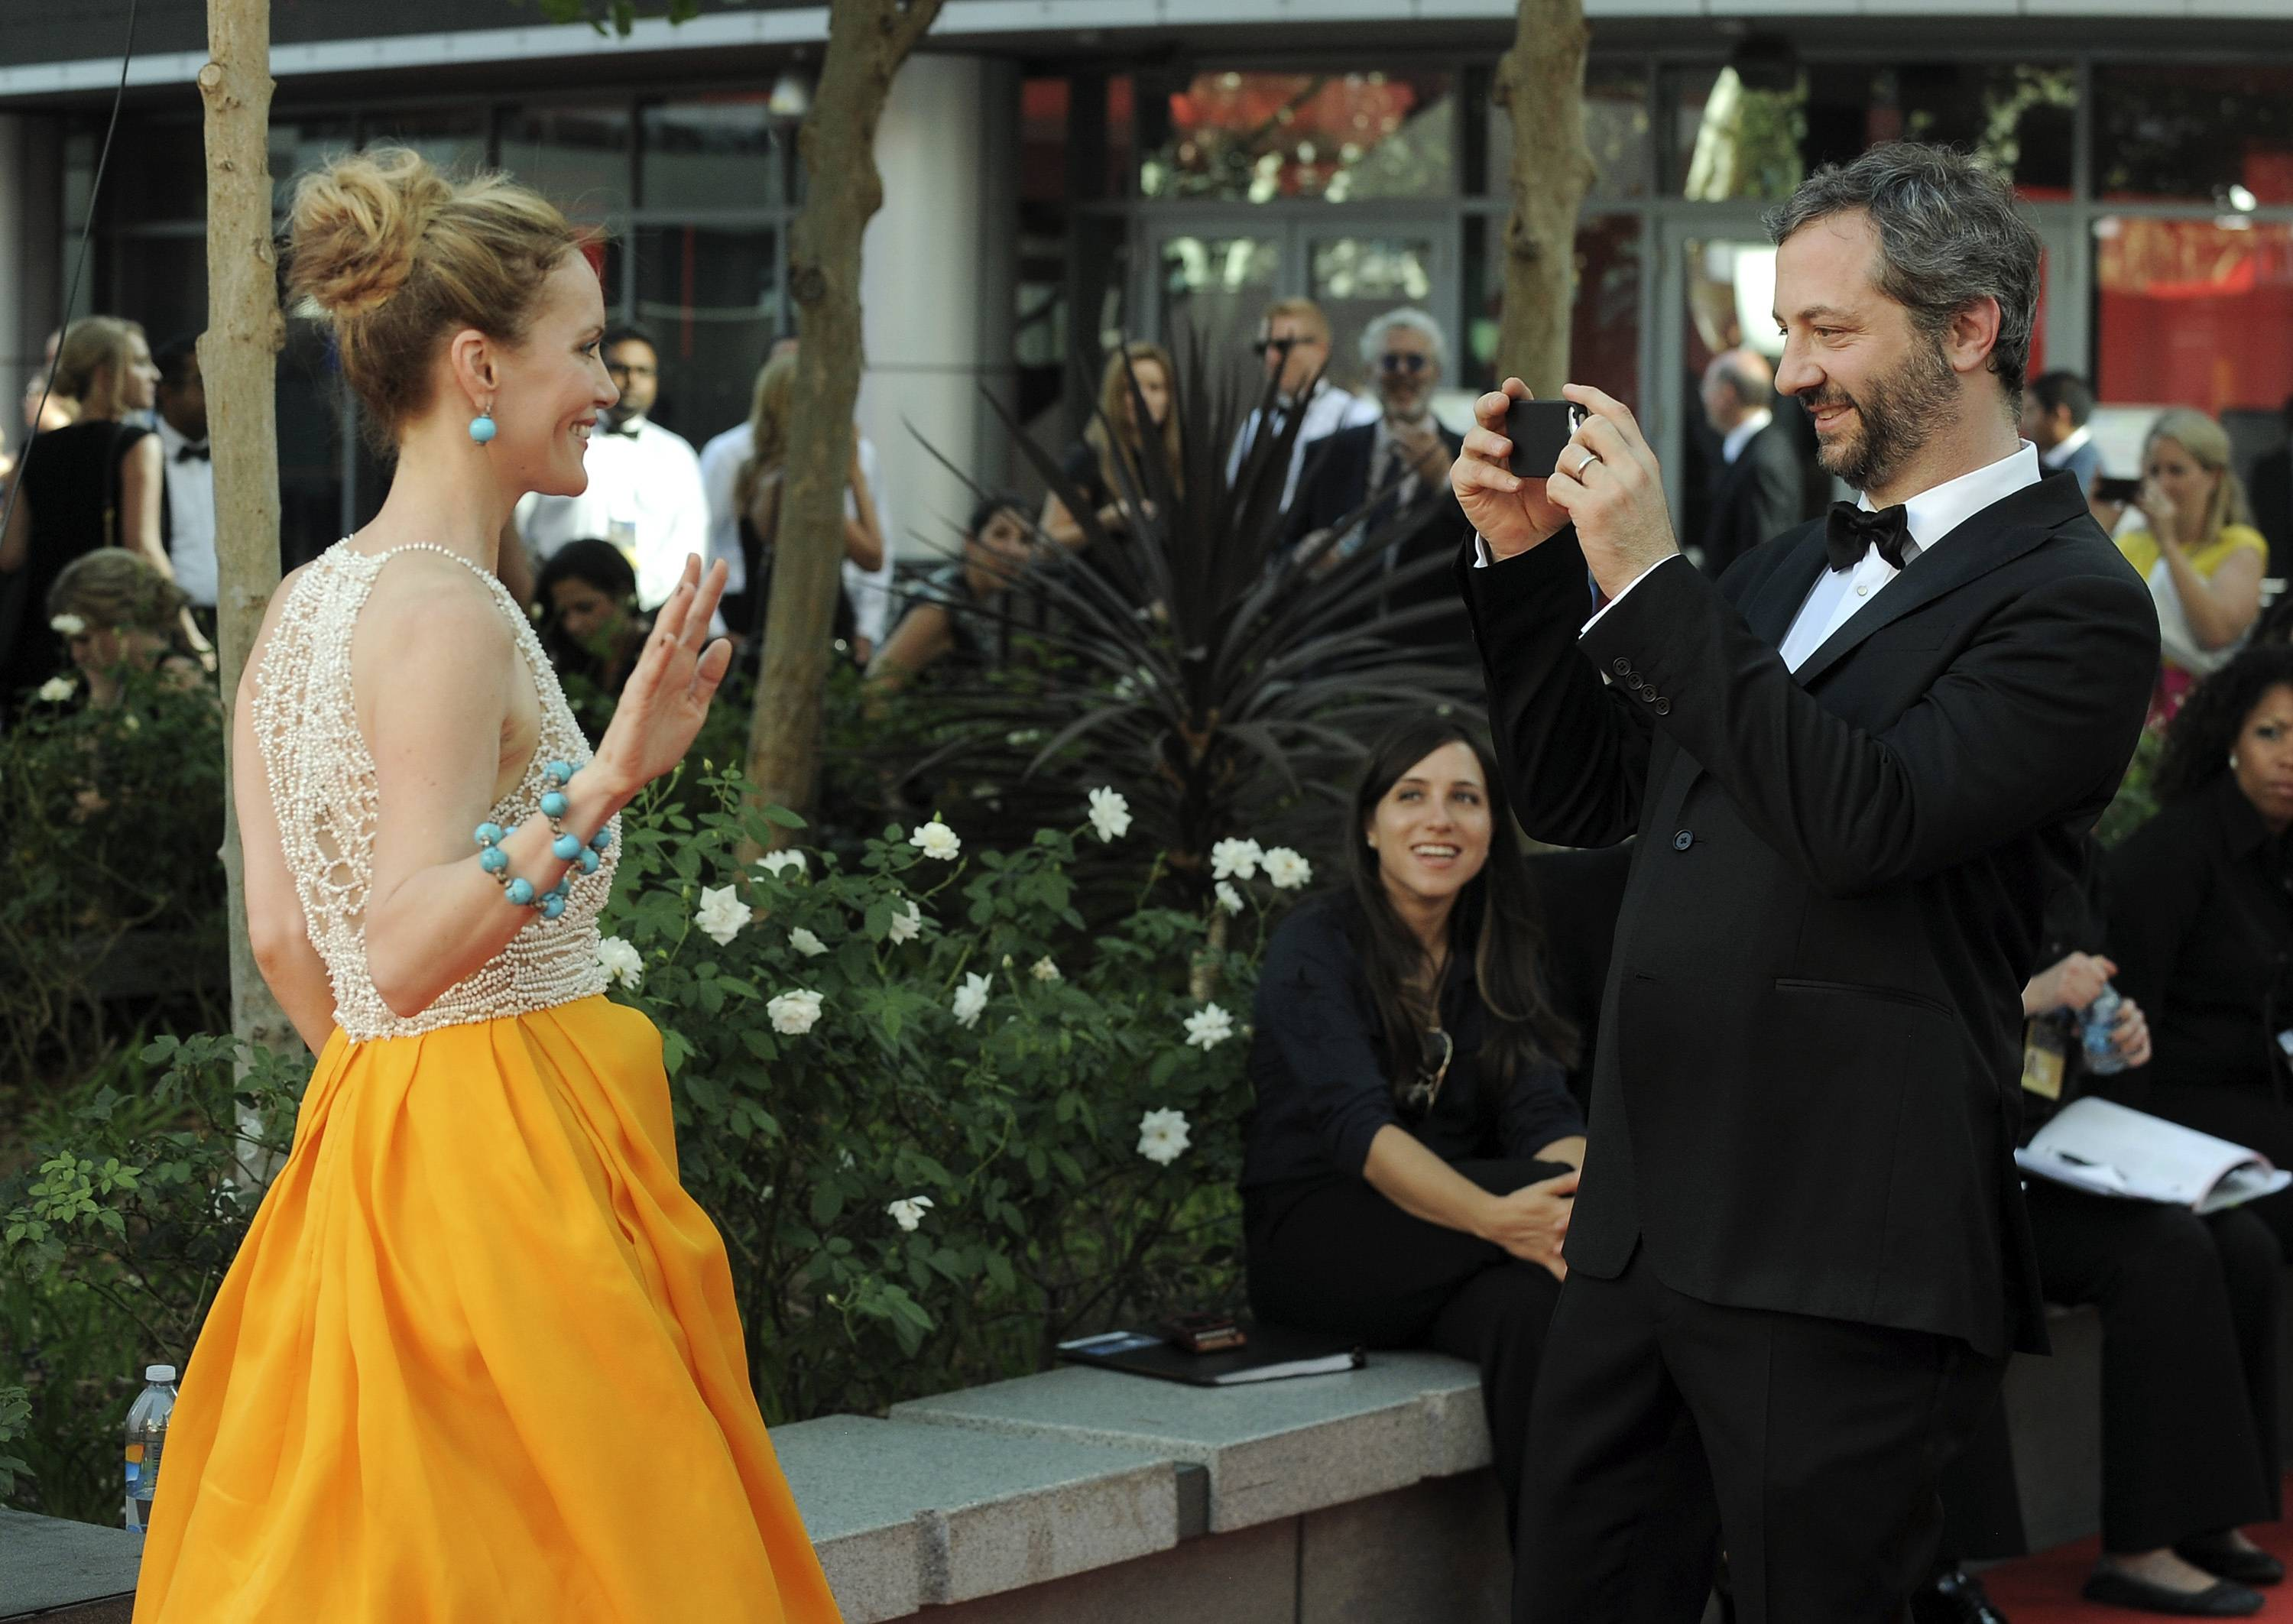 Actress Leslie Mann gets her picture taken by her husband, director Judd Apatow.